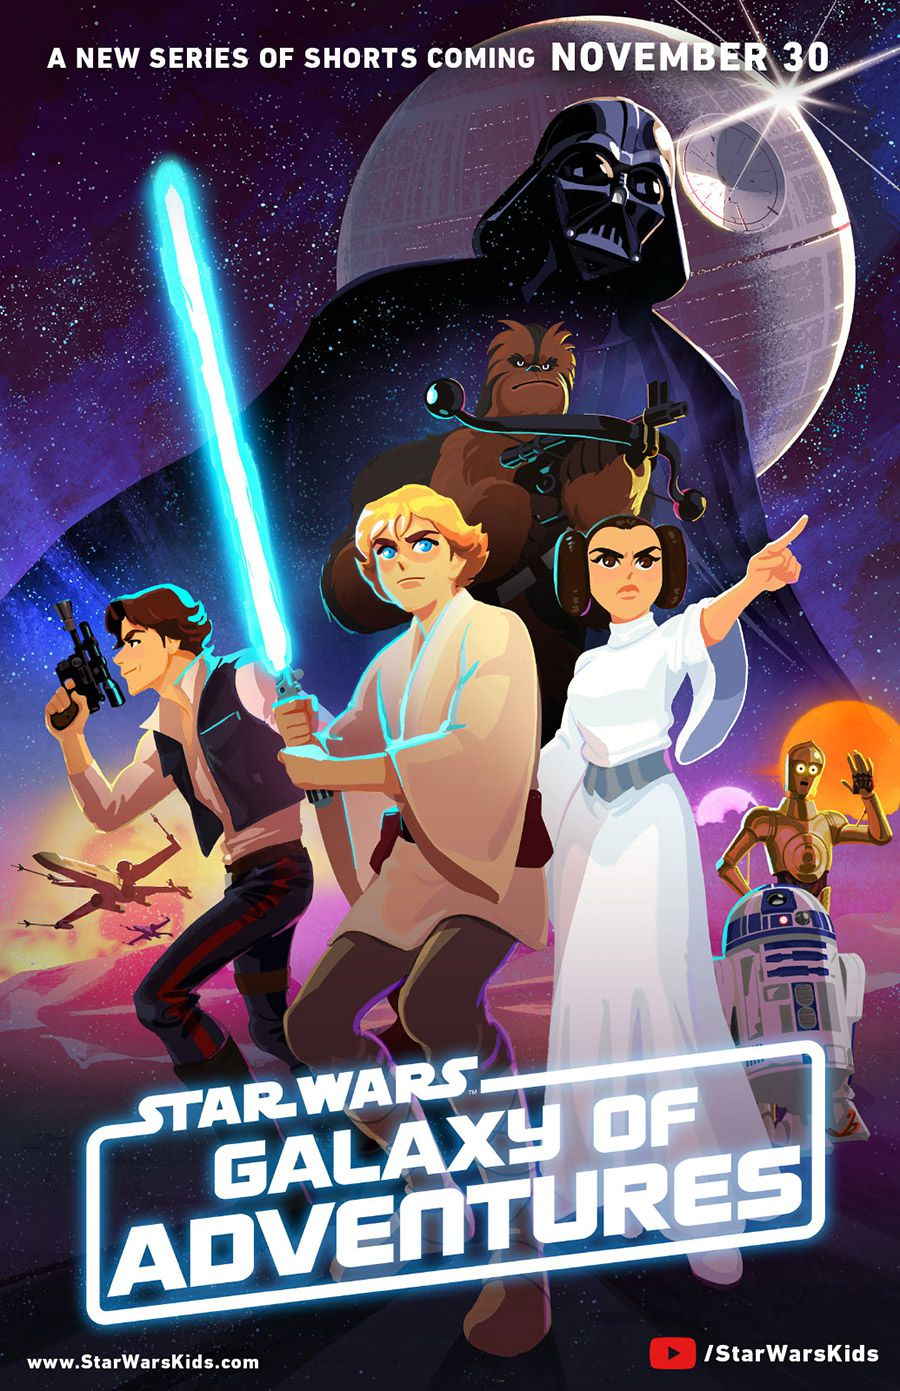 Disney Is Turning The Original Star Wars Movies Into